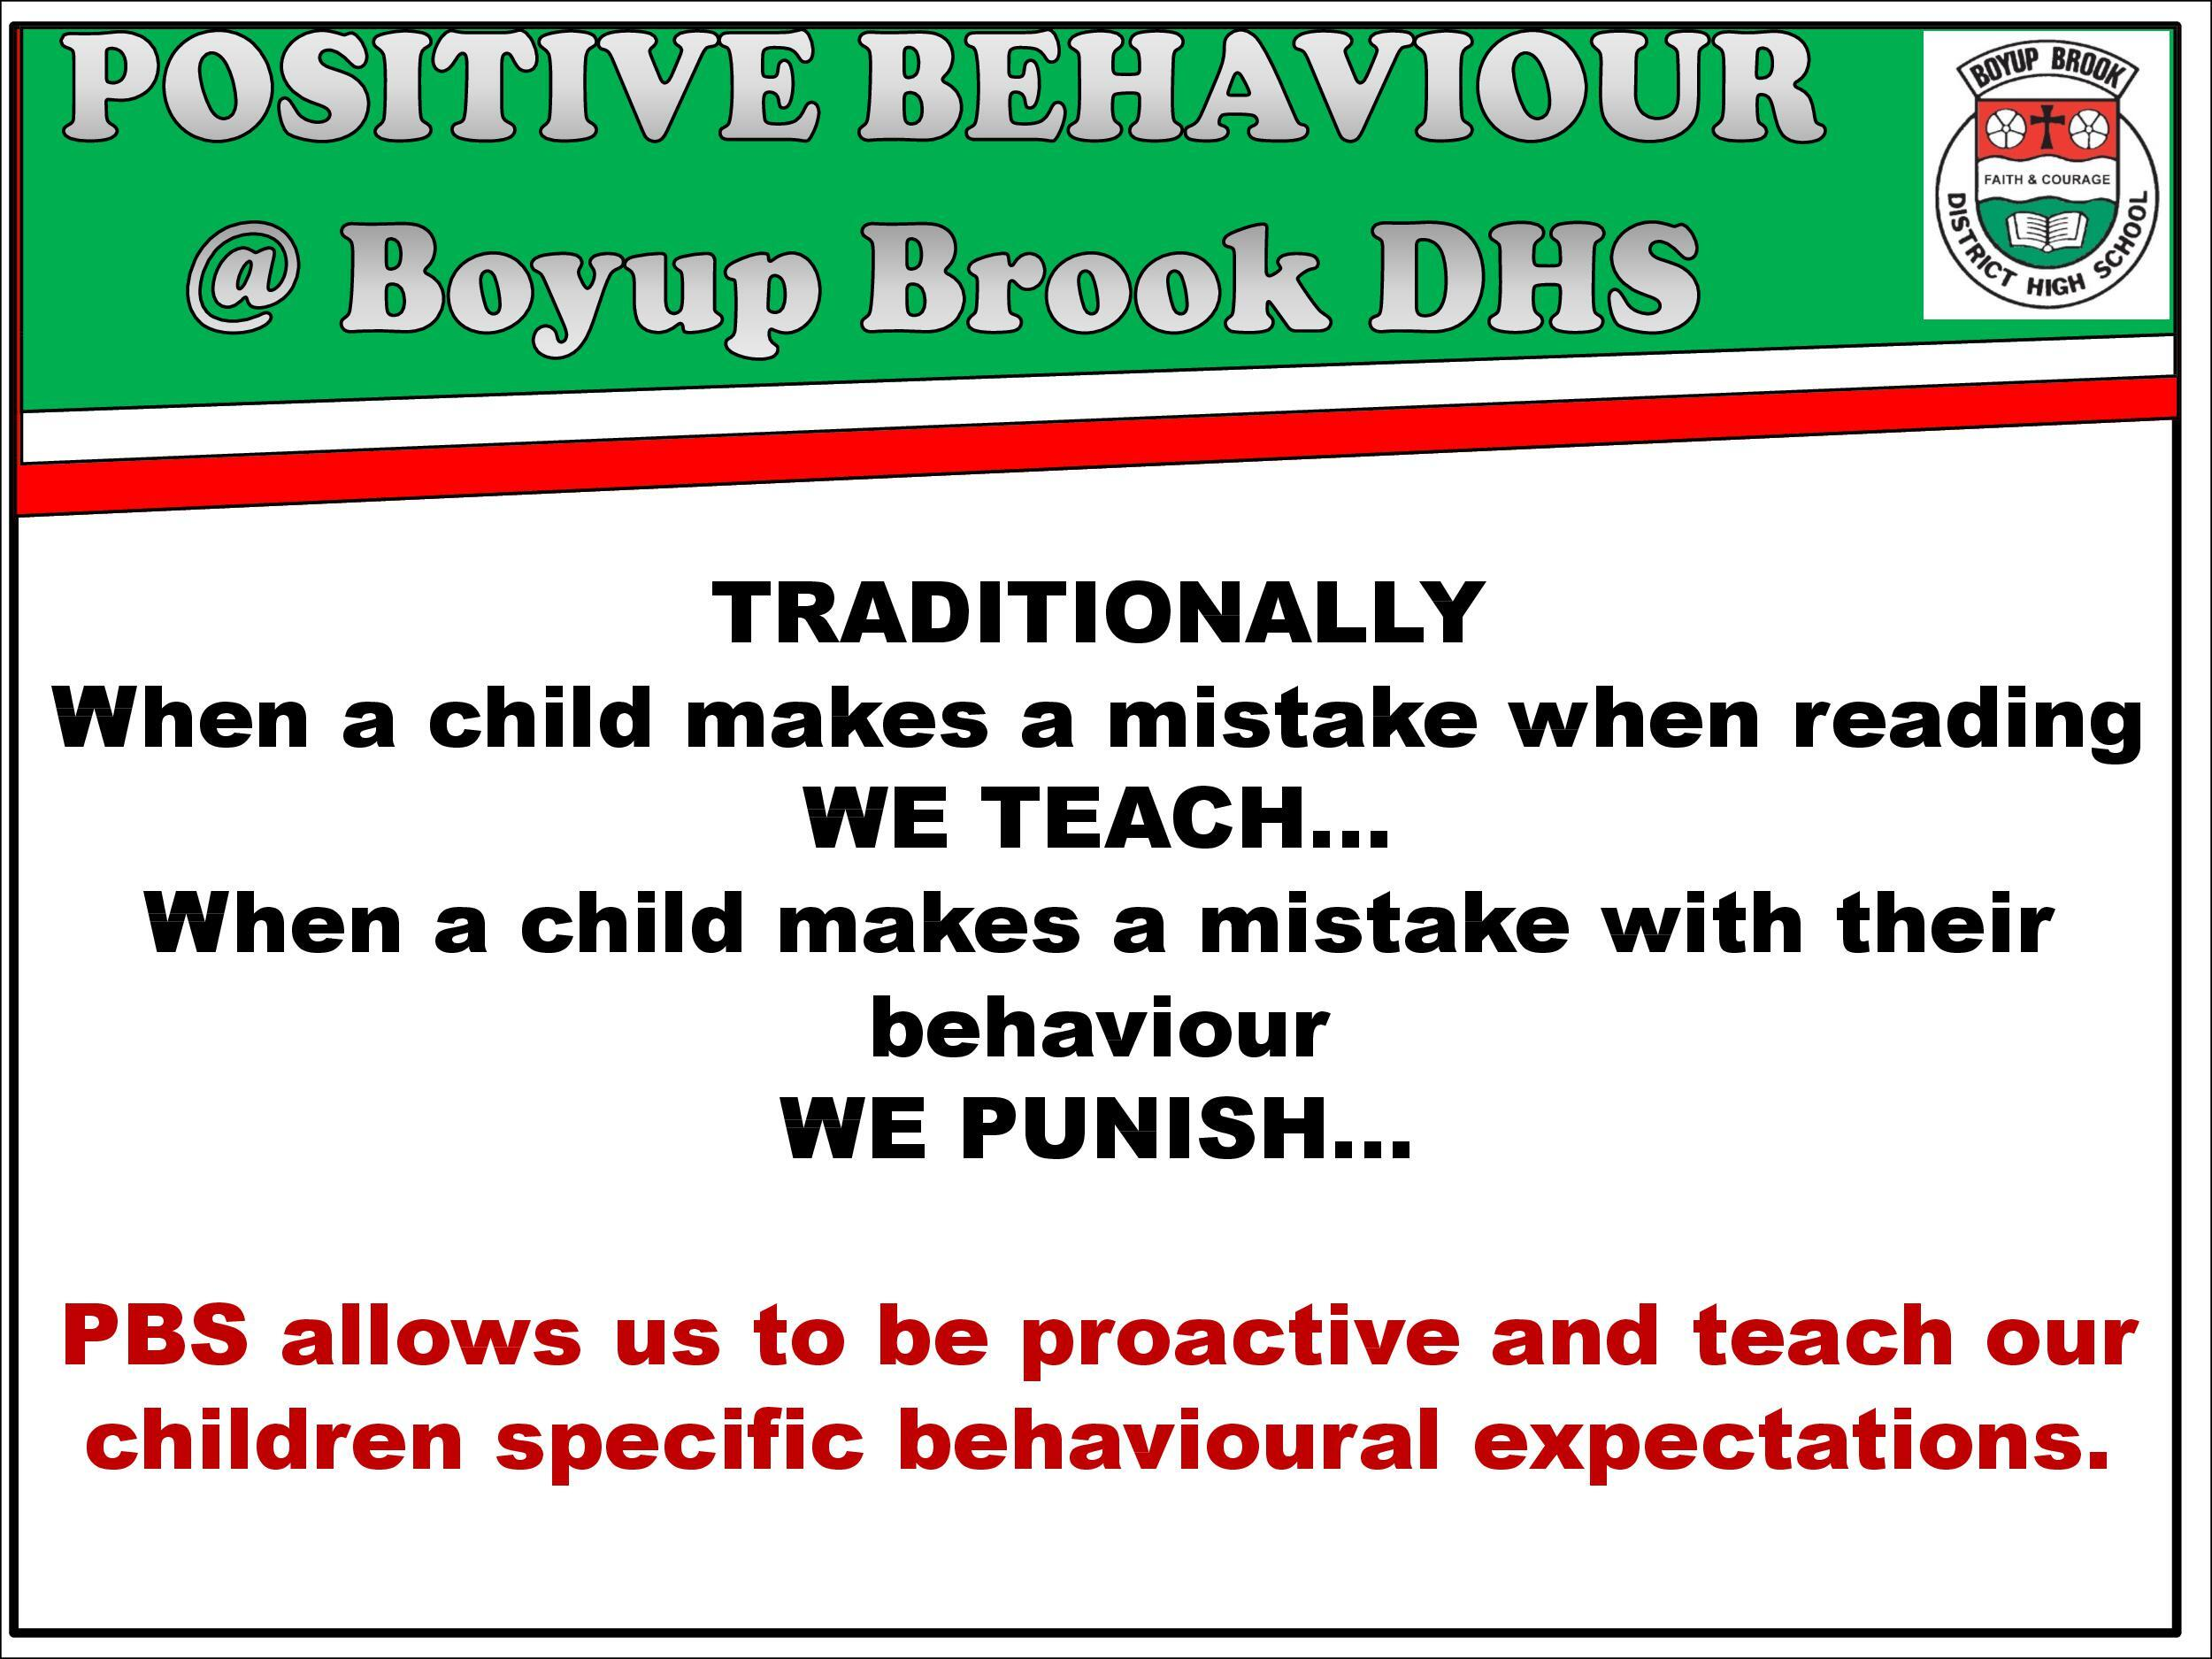 Positive Behaviour Support Page 2